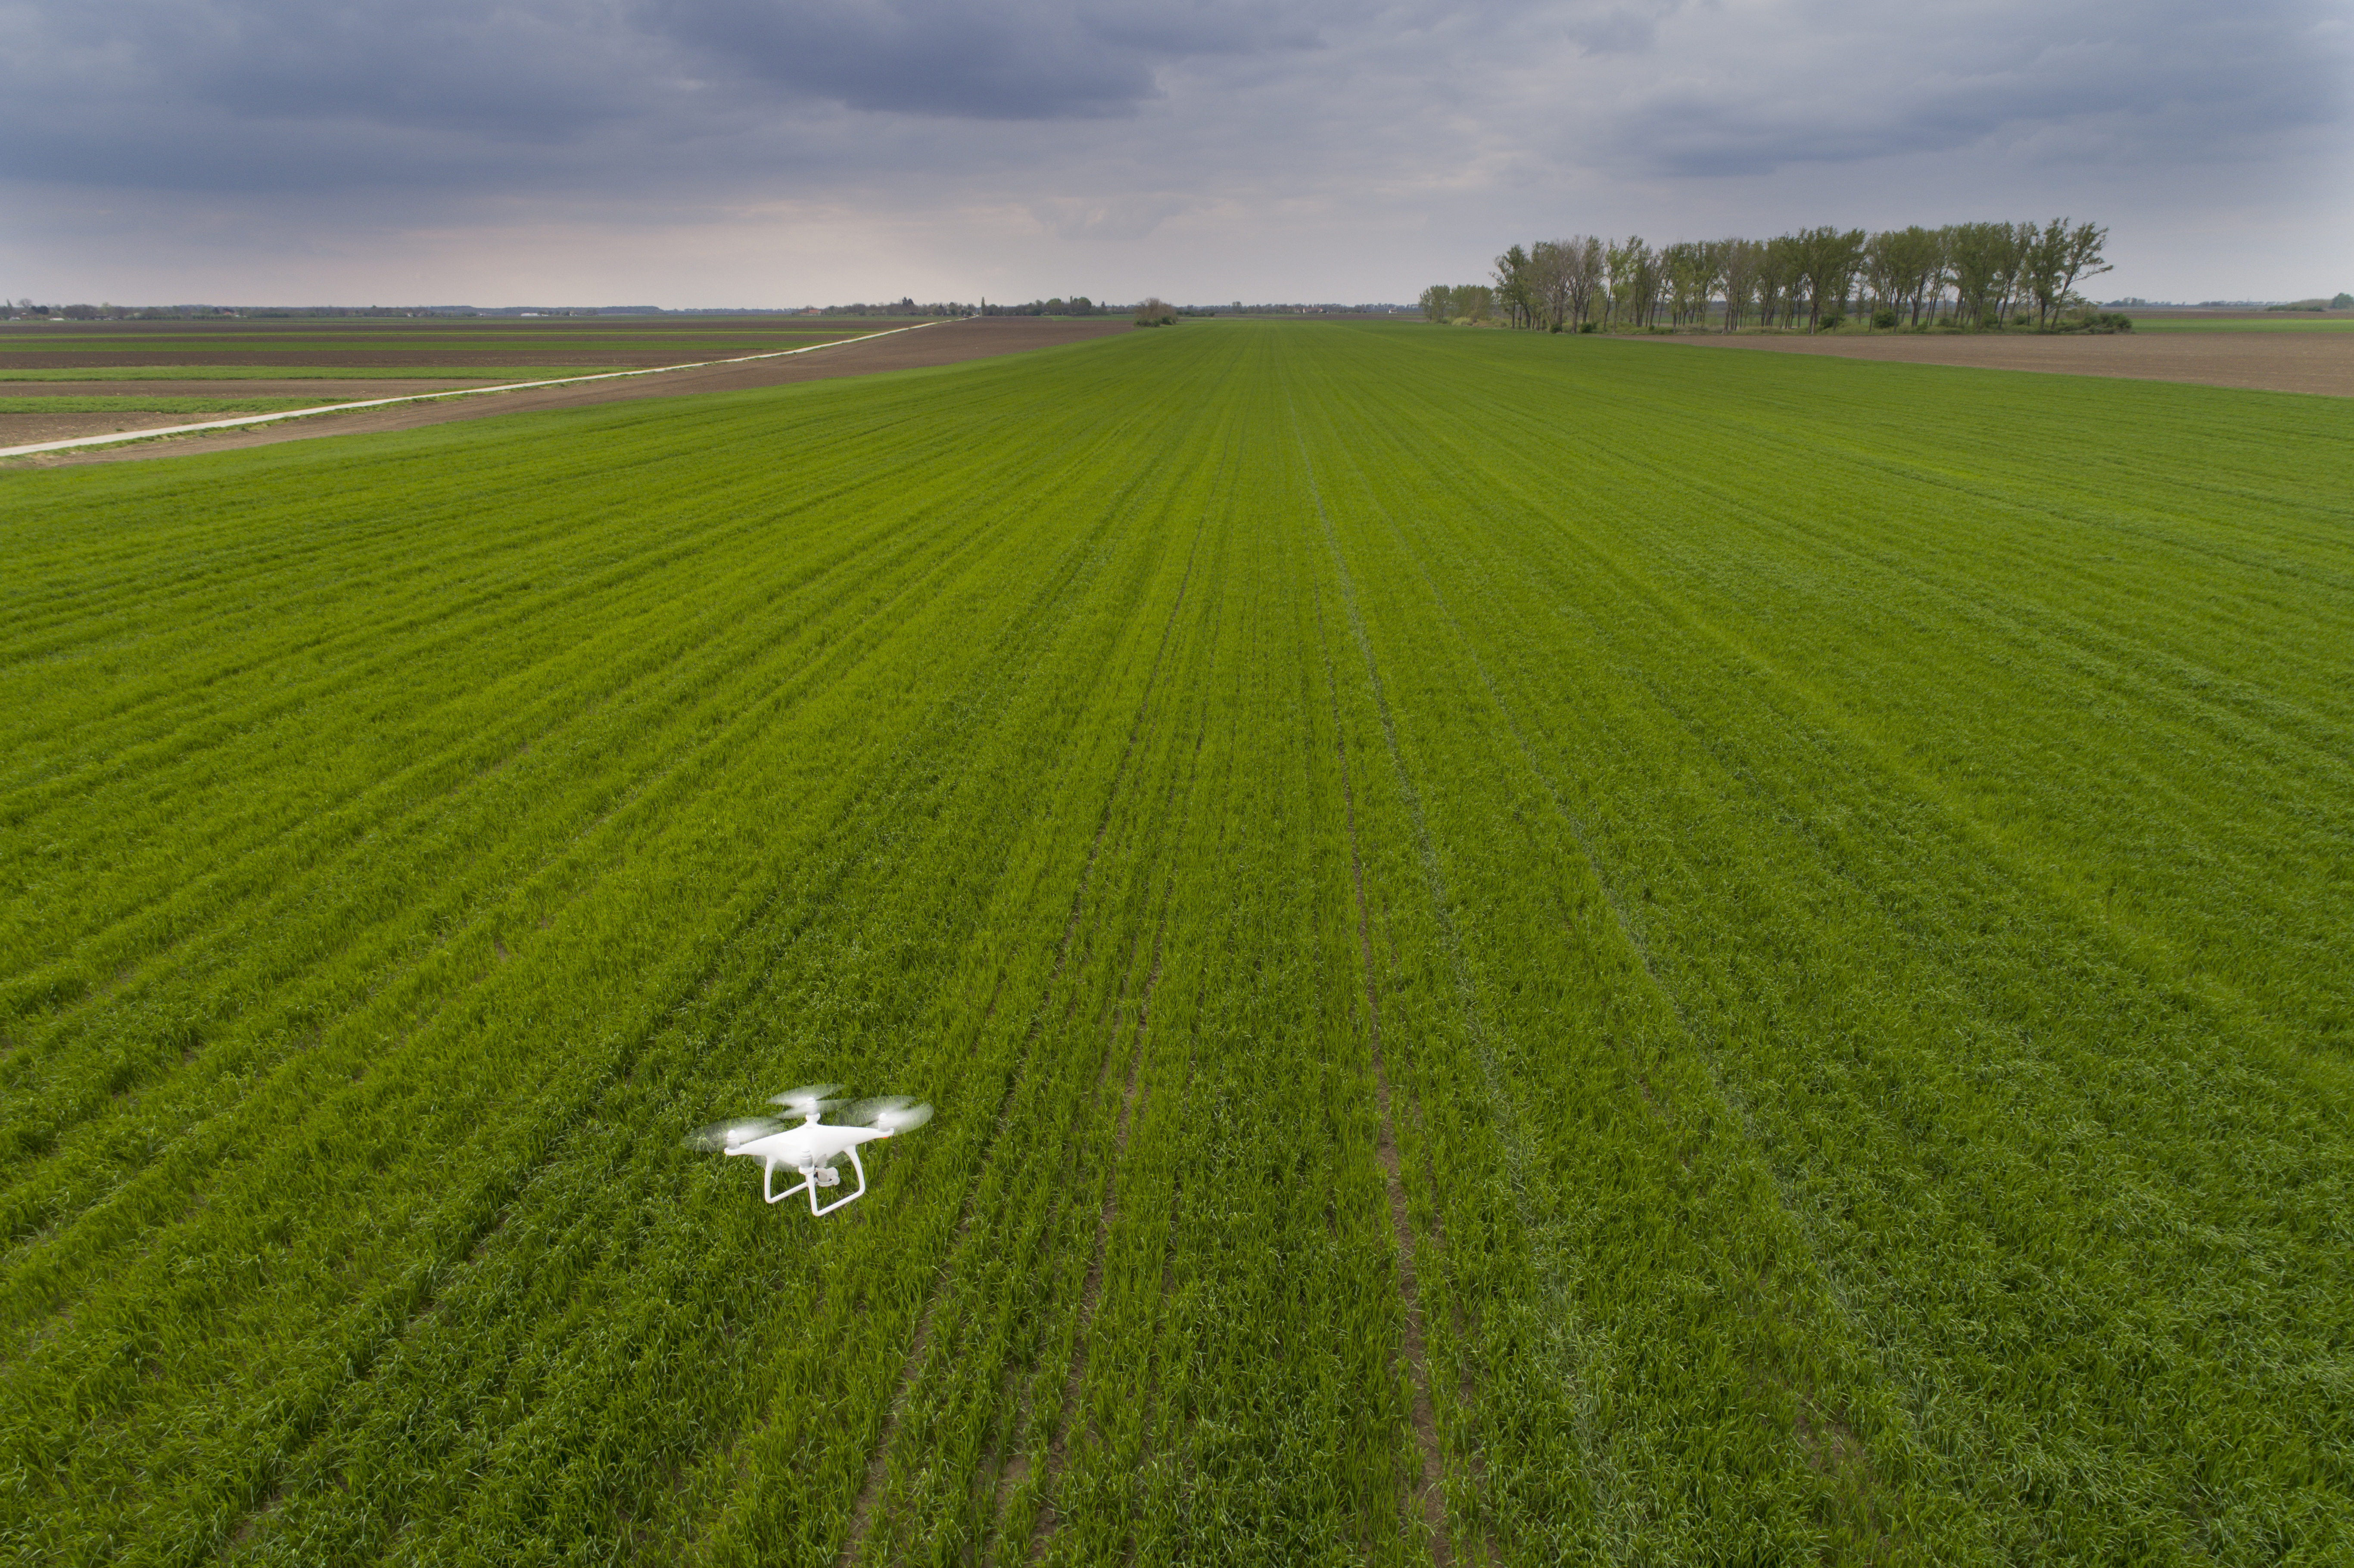 Spraying Drones For Sale